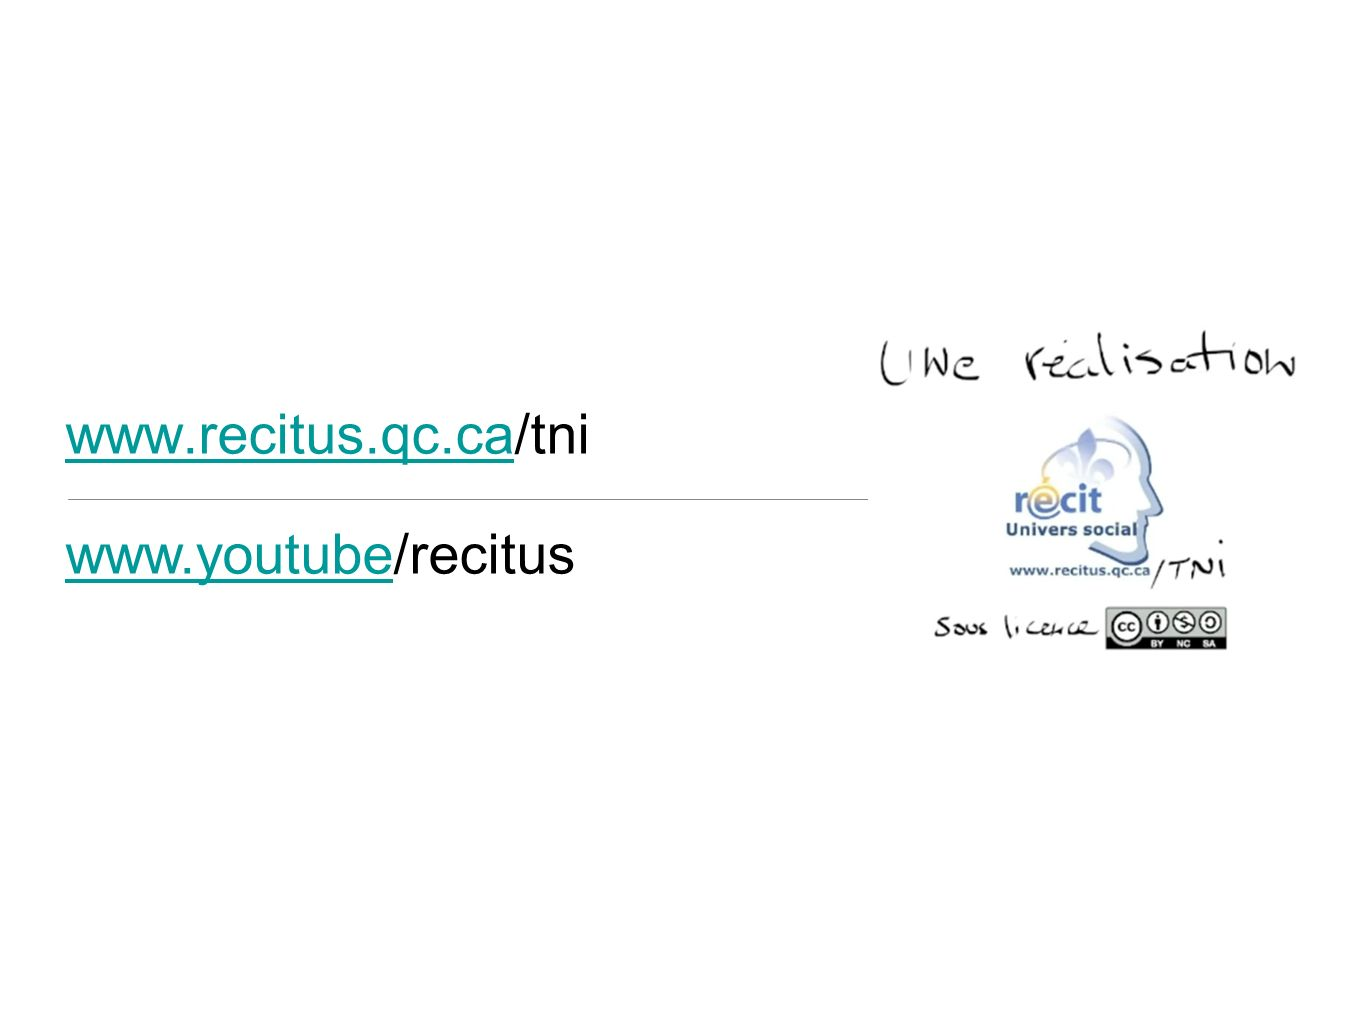 www.recitus.qc.cawww.recitus.qc.ca/tni www.youtubewww.youtube/recitus